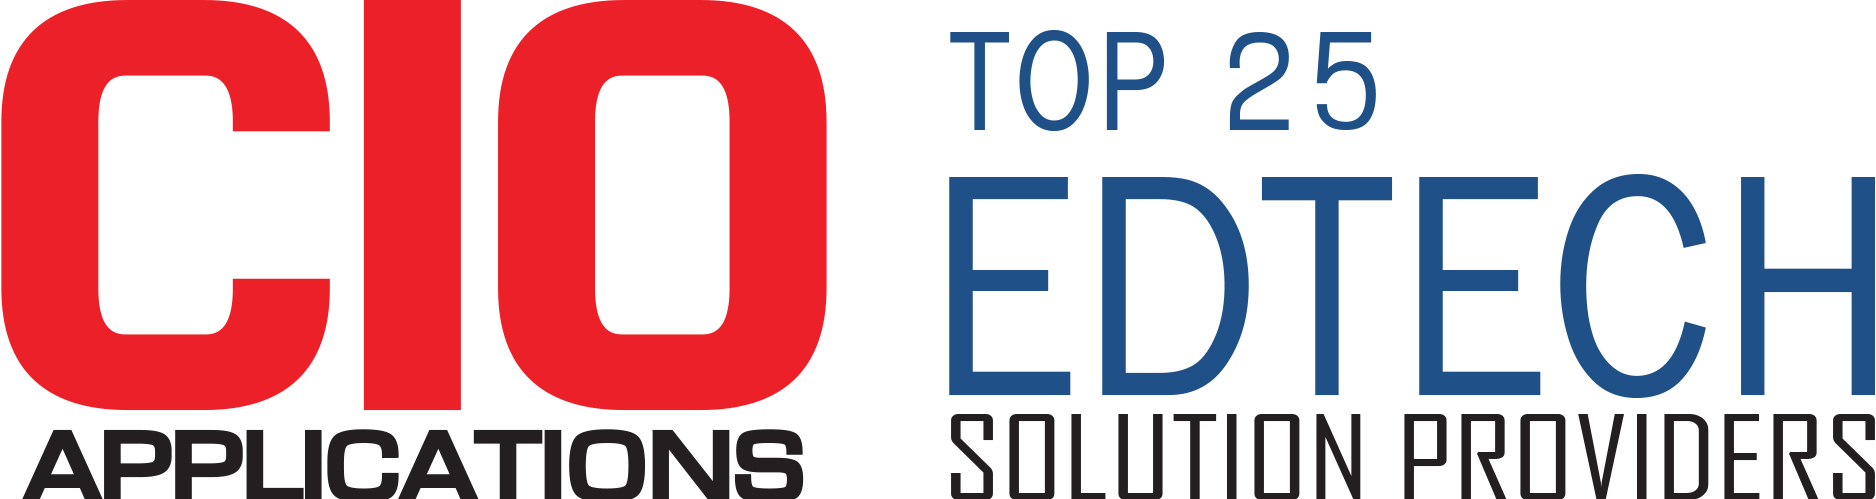 Top 25 EDTech Solution Companies - 2019